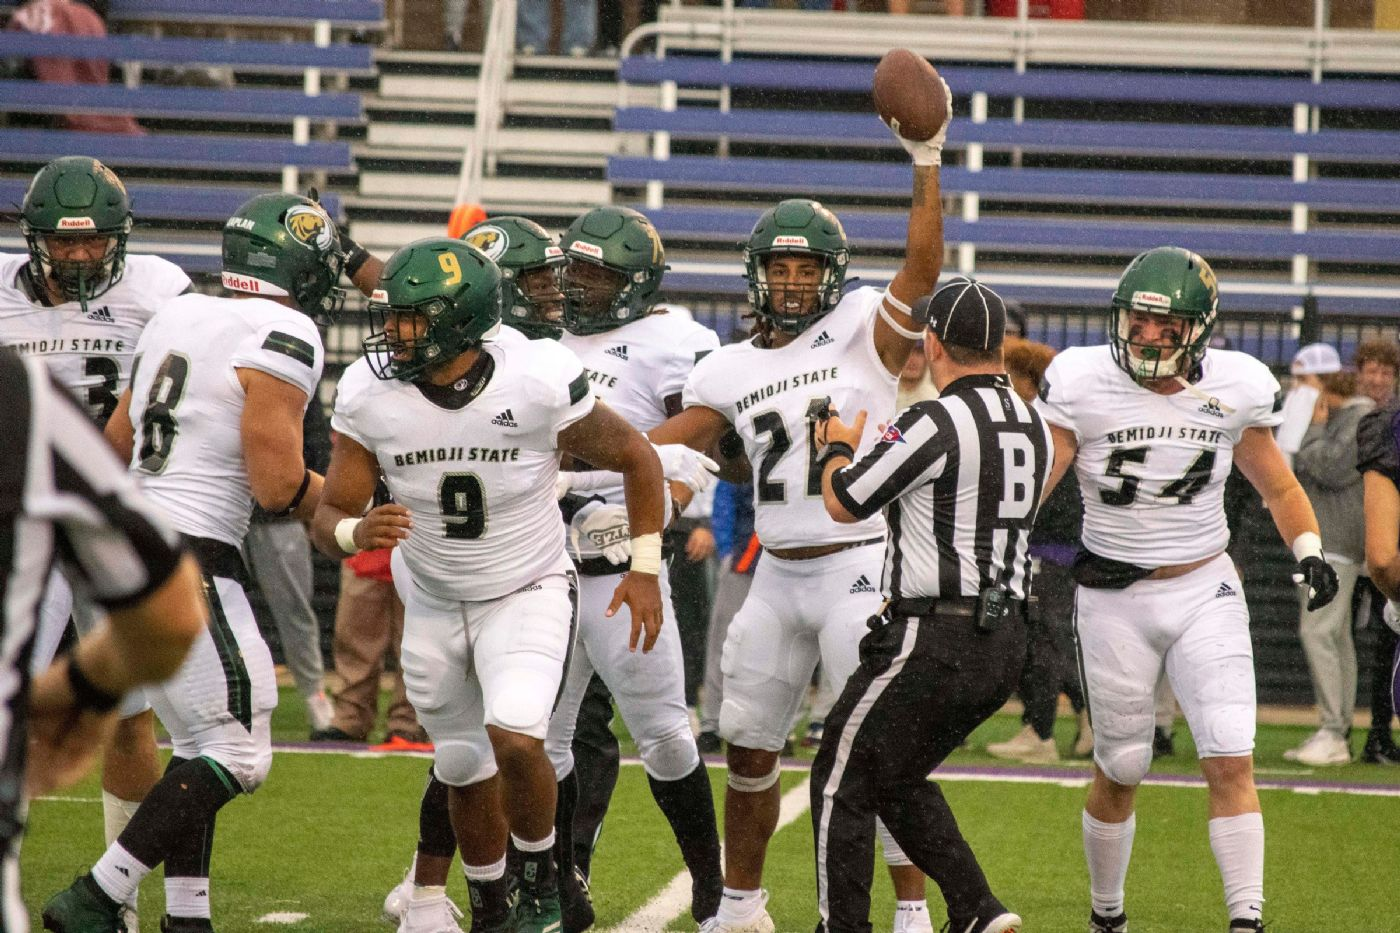 Beavers stand strong in 24-16 season opening win over Cougars